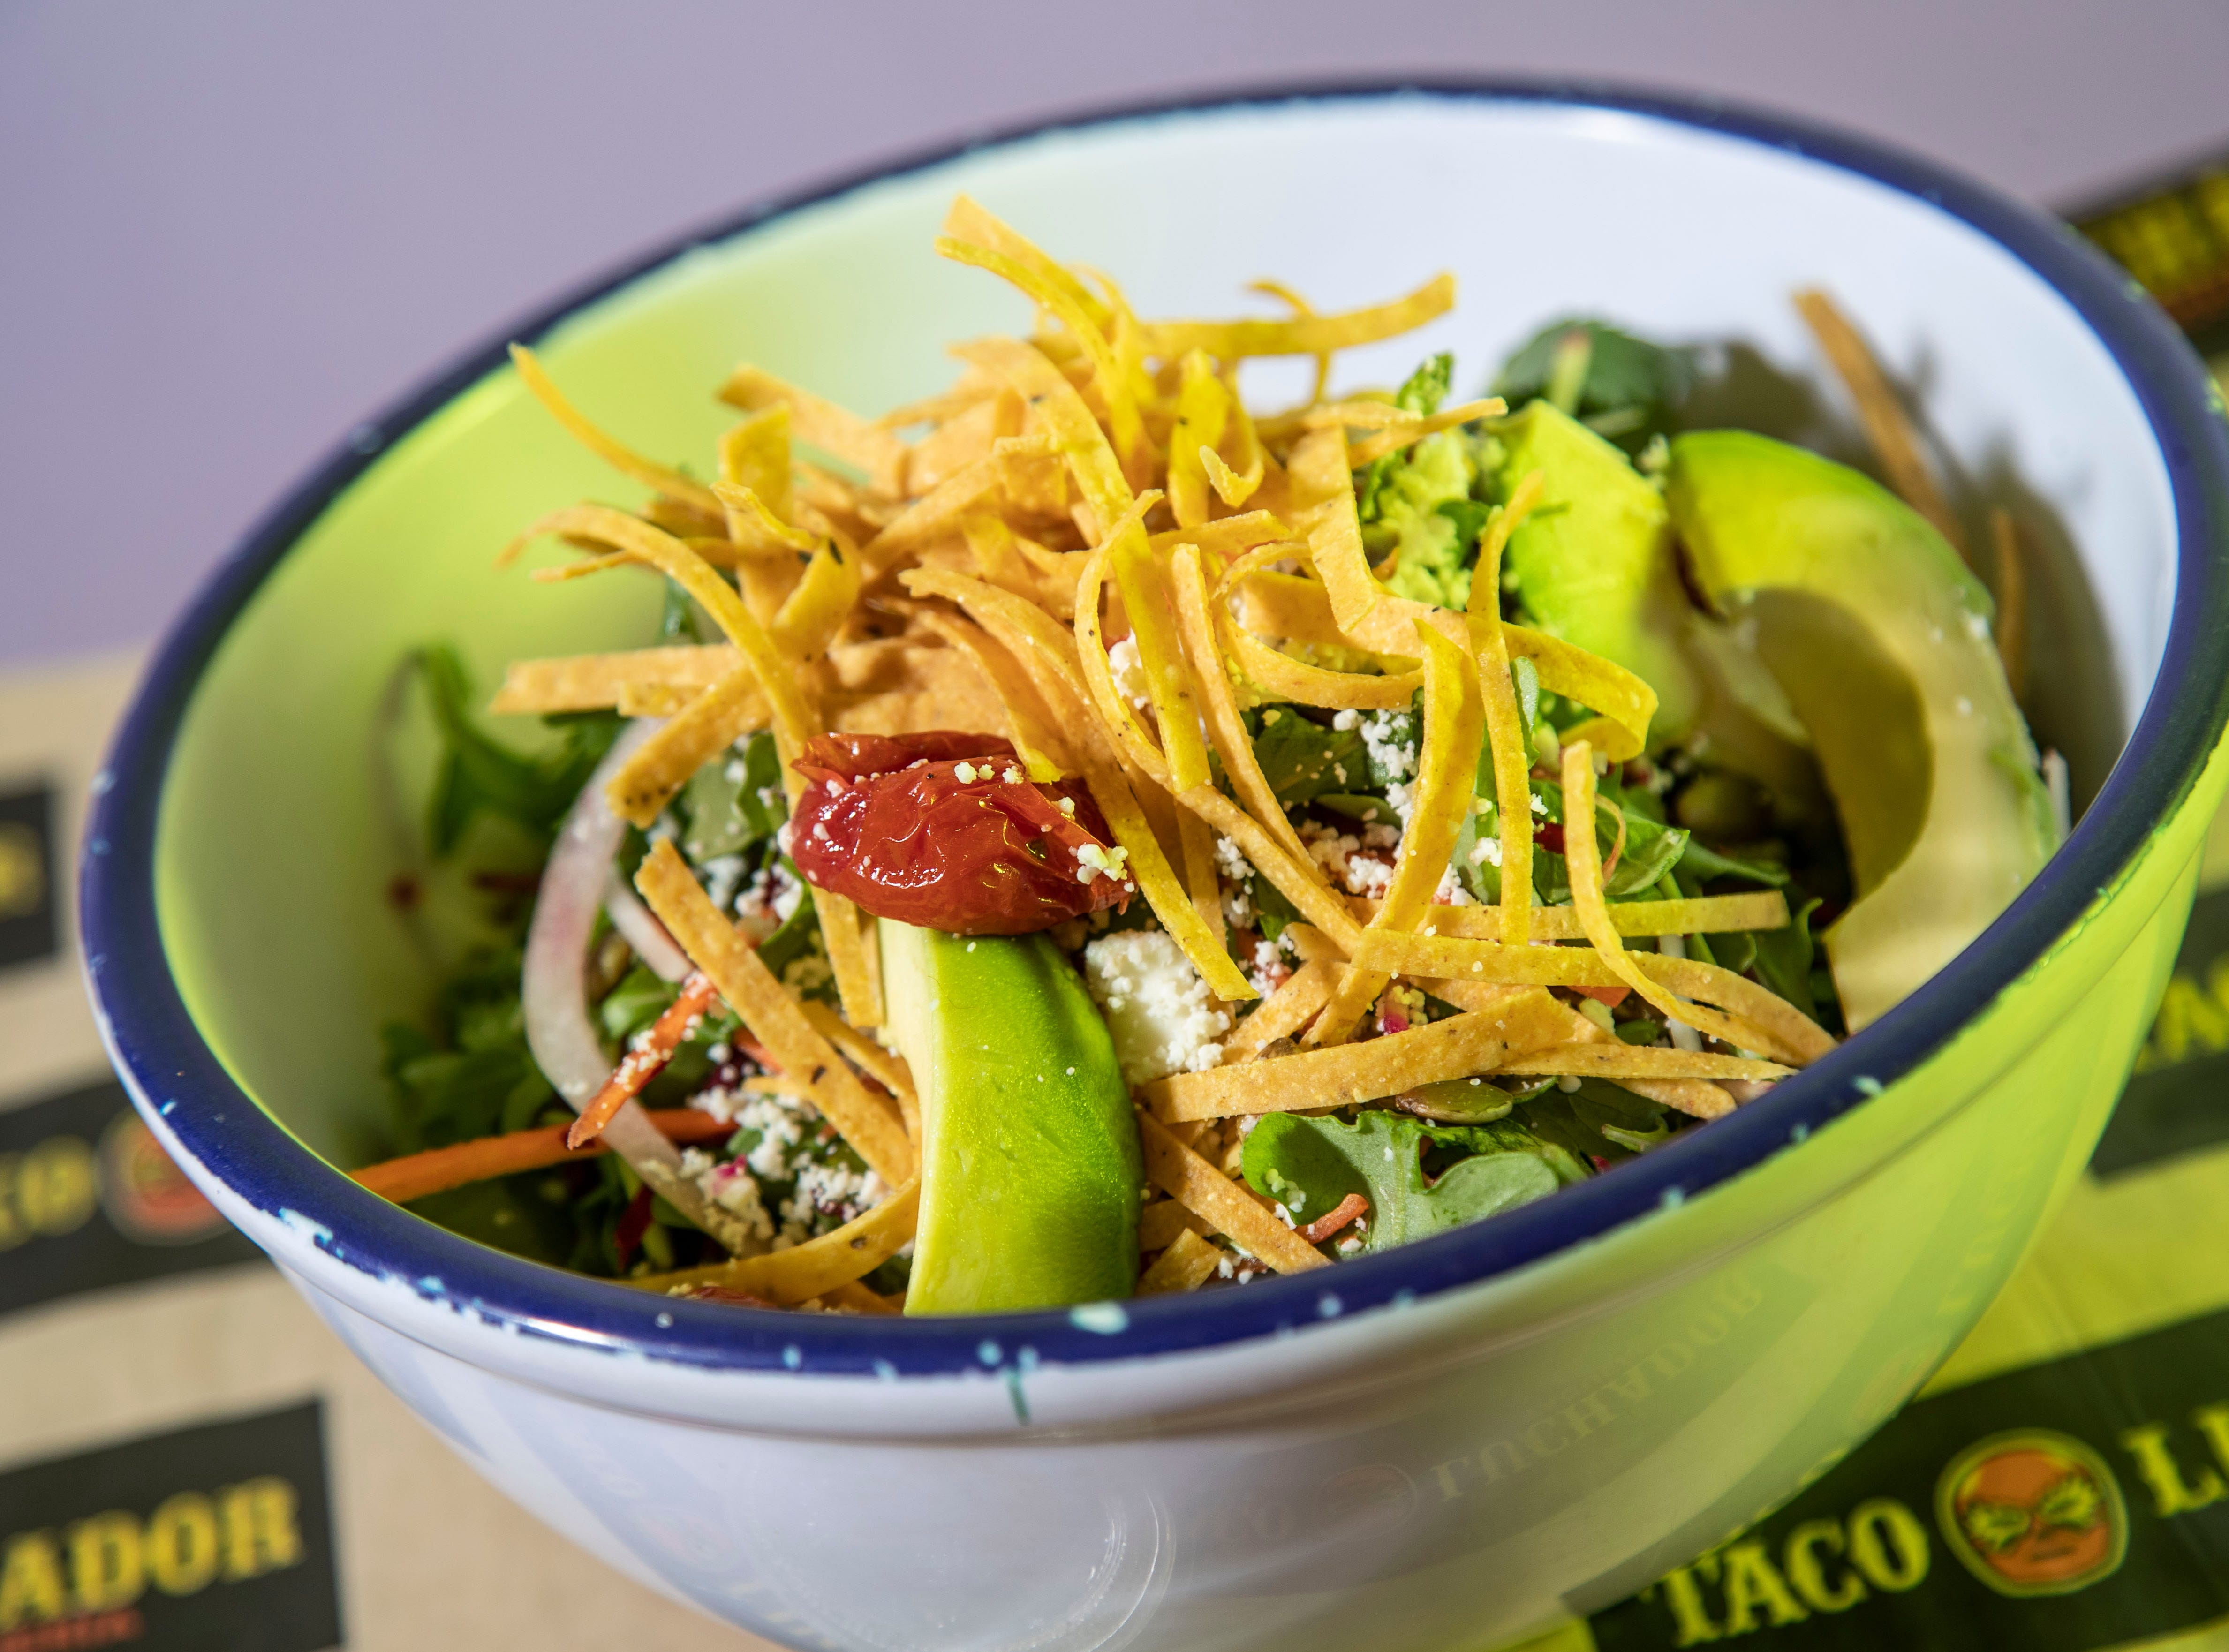 The Crunchy Mexican from Taco Luchador includes roasted cherry tomatoes, pickled red cabbage, carrots, onions, avocado, cilantro, beets, lime-cilantro agave vinaigrette, arugula, queso fresco with crispy tortilla strips and pumpkin seeds.